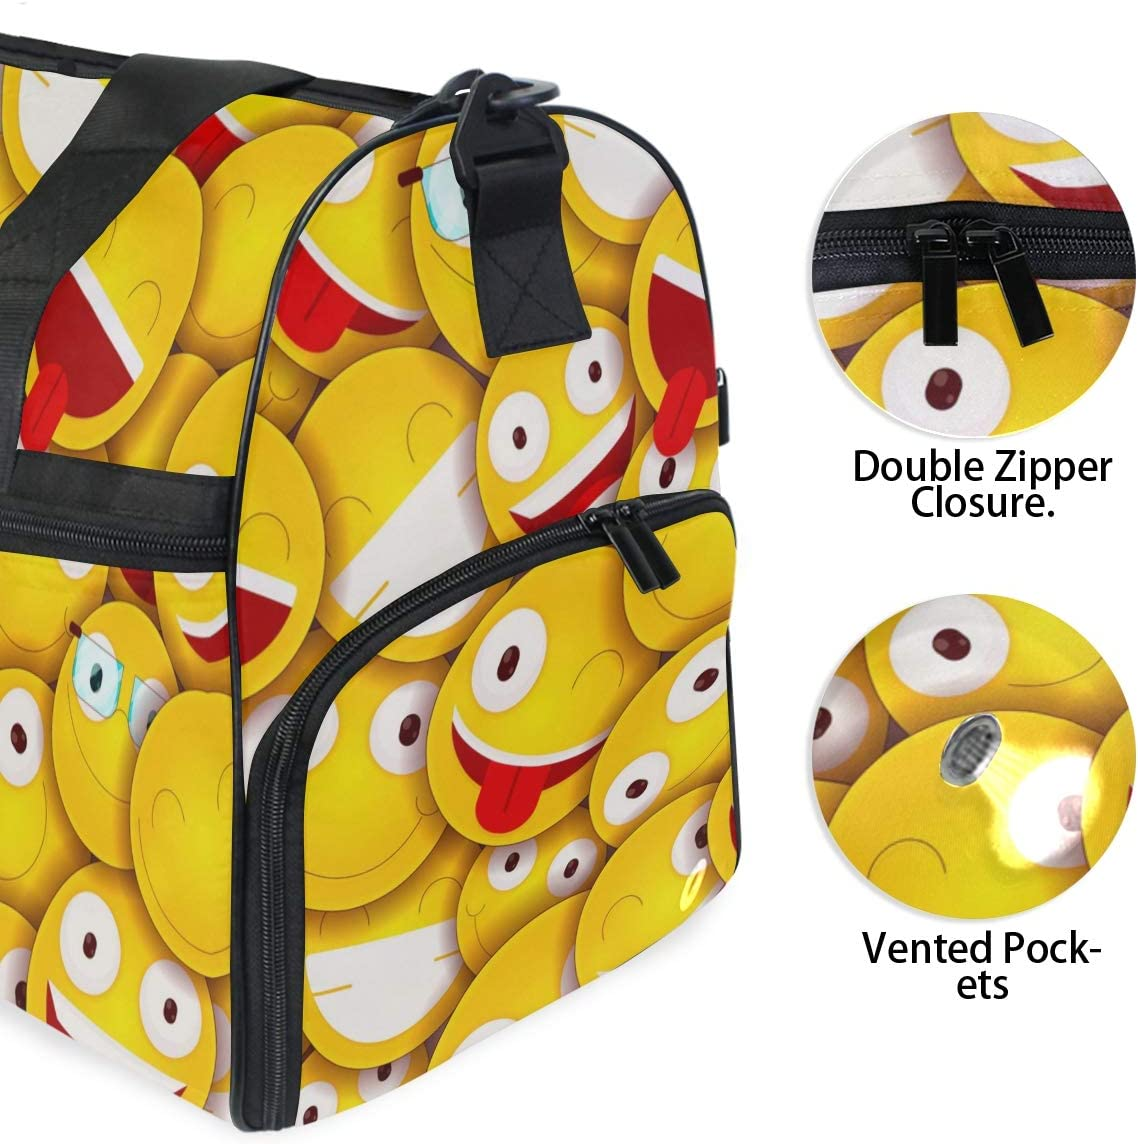 FAJRO Gym Bag Travel Duffel Express Weekender Bag Colored Emoticons Carry On Luggage with Shoe Pouch